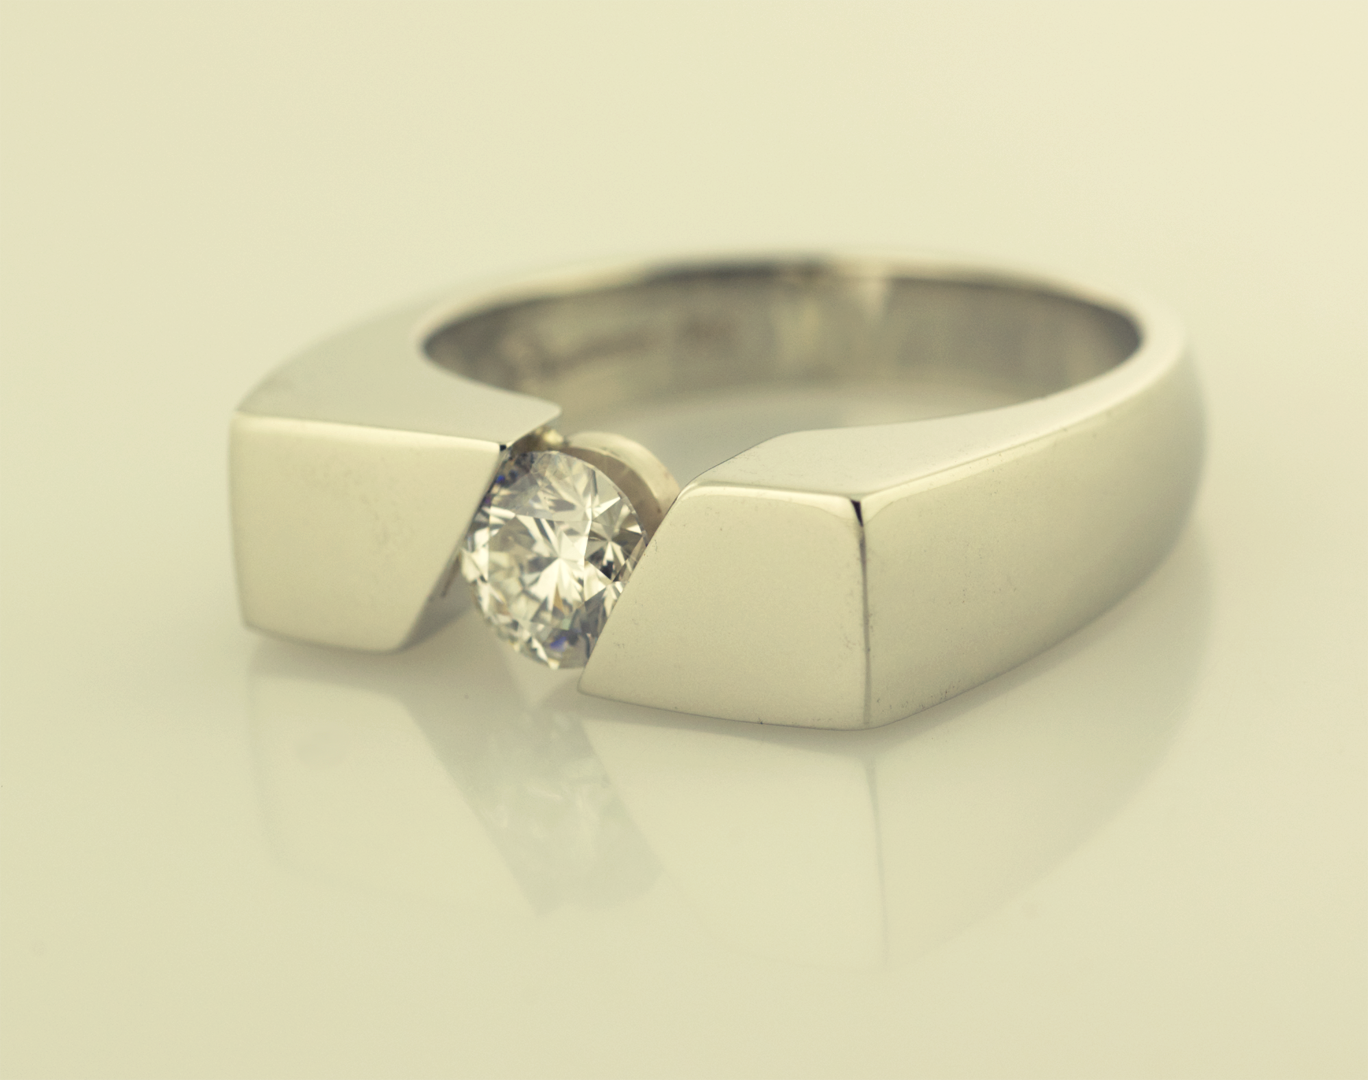 Gents Ring Channel set 1.00ct. Round Diamond | Rings, Artistic ...